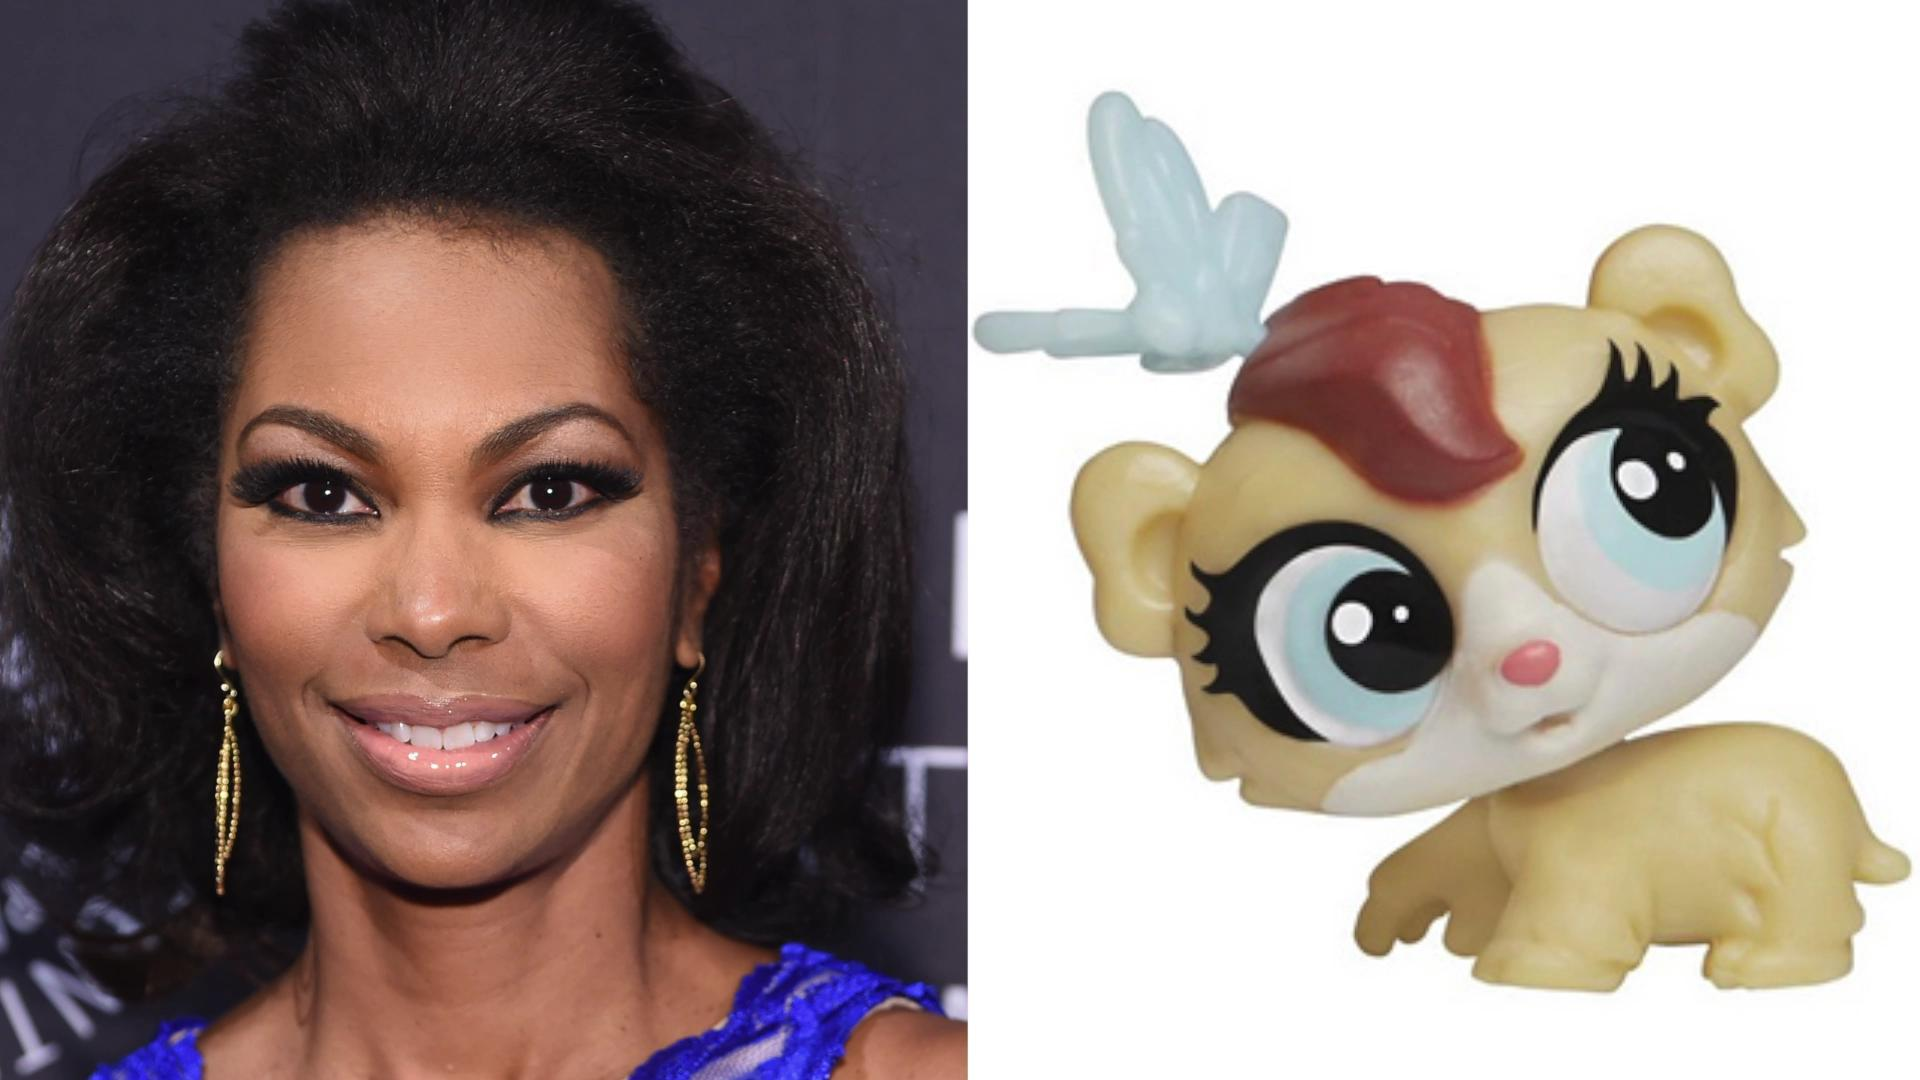 Fox News anchor suing Hasbro for 5 million dollars over toy hamster